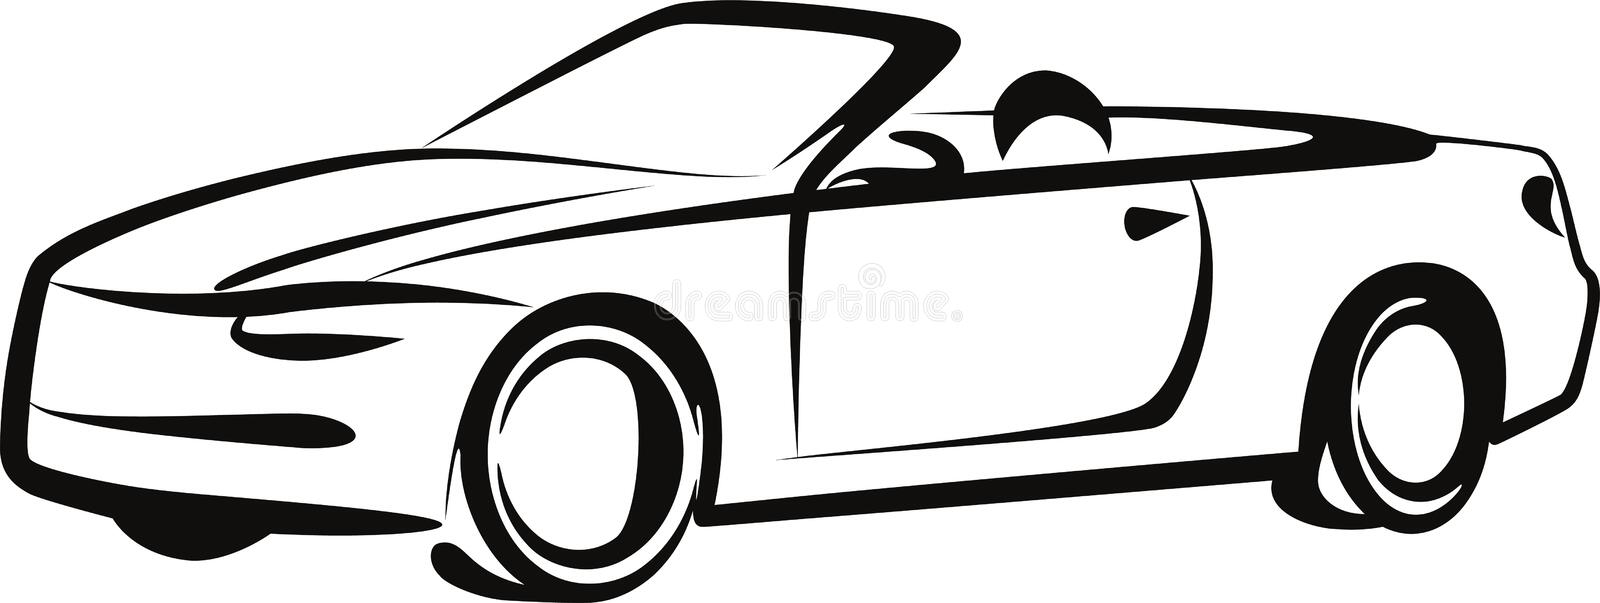 Car. Simple illustration with a car vector illustration